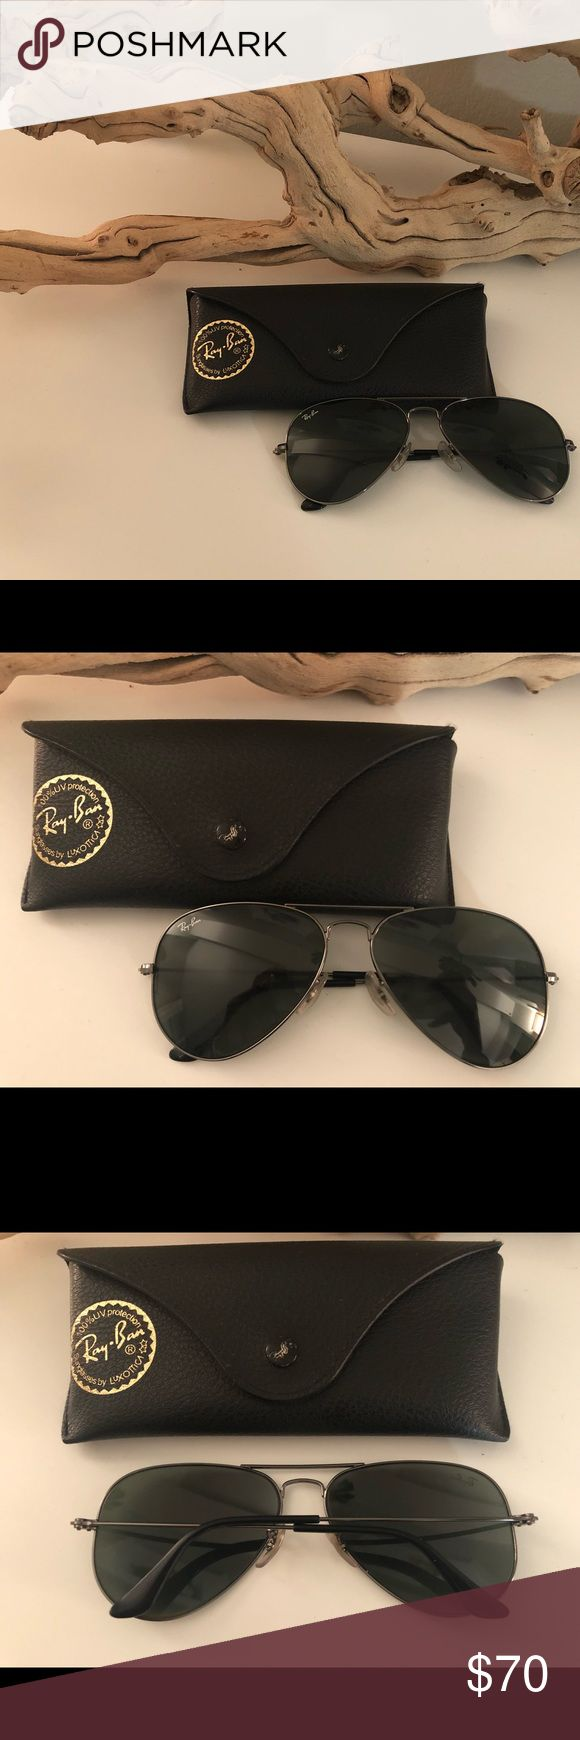 Ray Ban Classic Aviator Sunglasses Ray Ban Classic Aviator Sunglasses 🕶 model RB3025 (Large metal) Reasonable offers accepted Ray-Ban Accessories Sunglasses